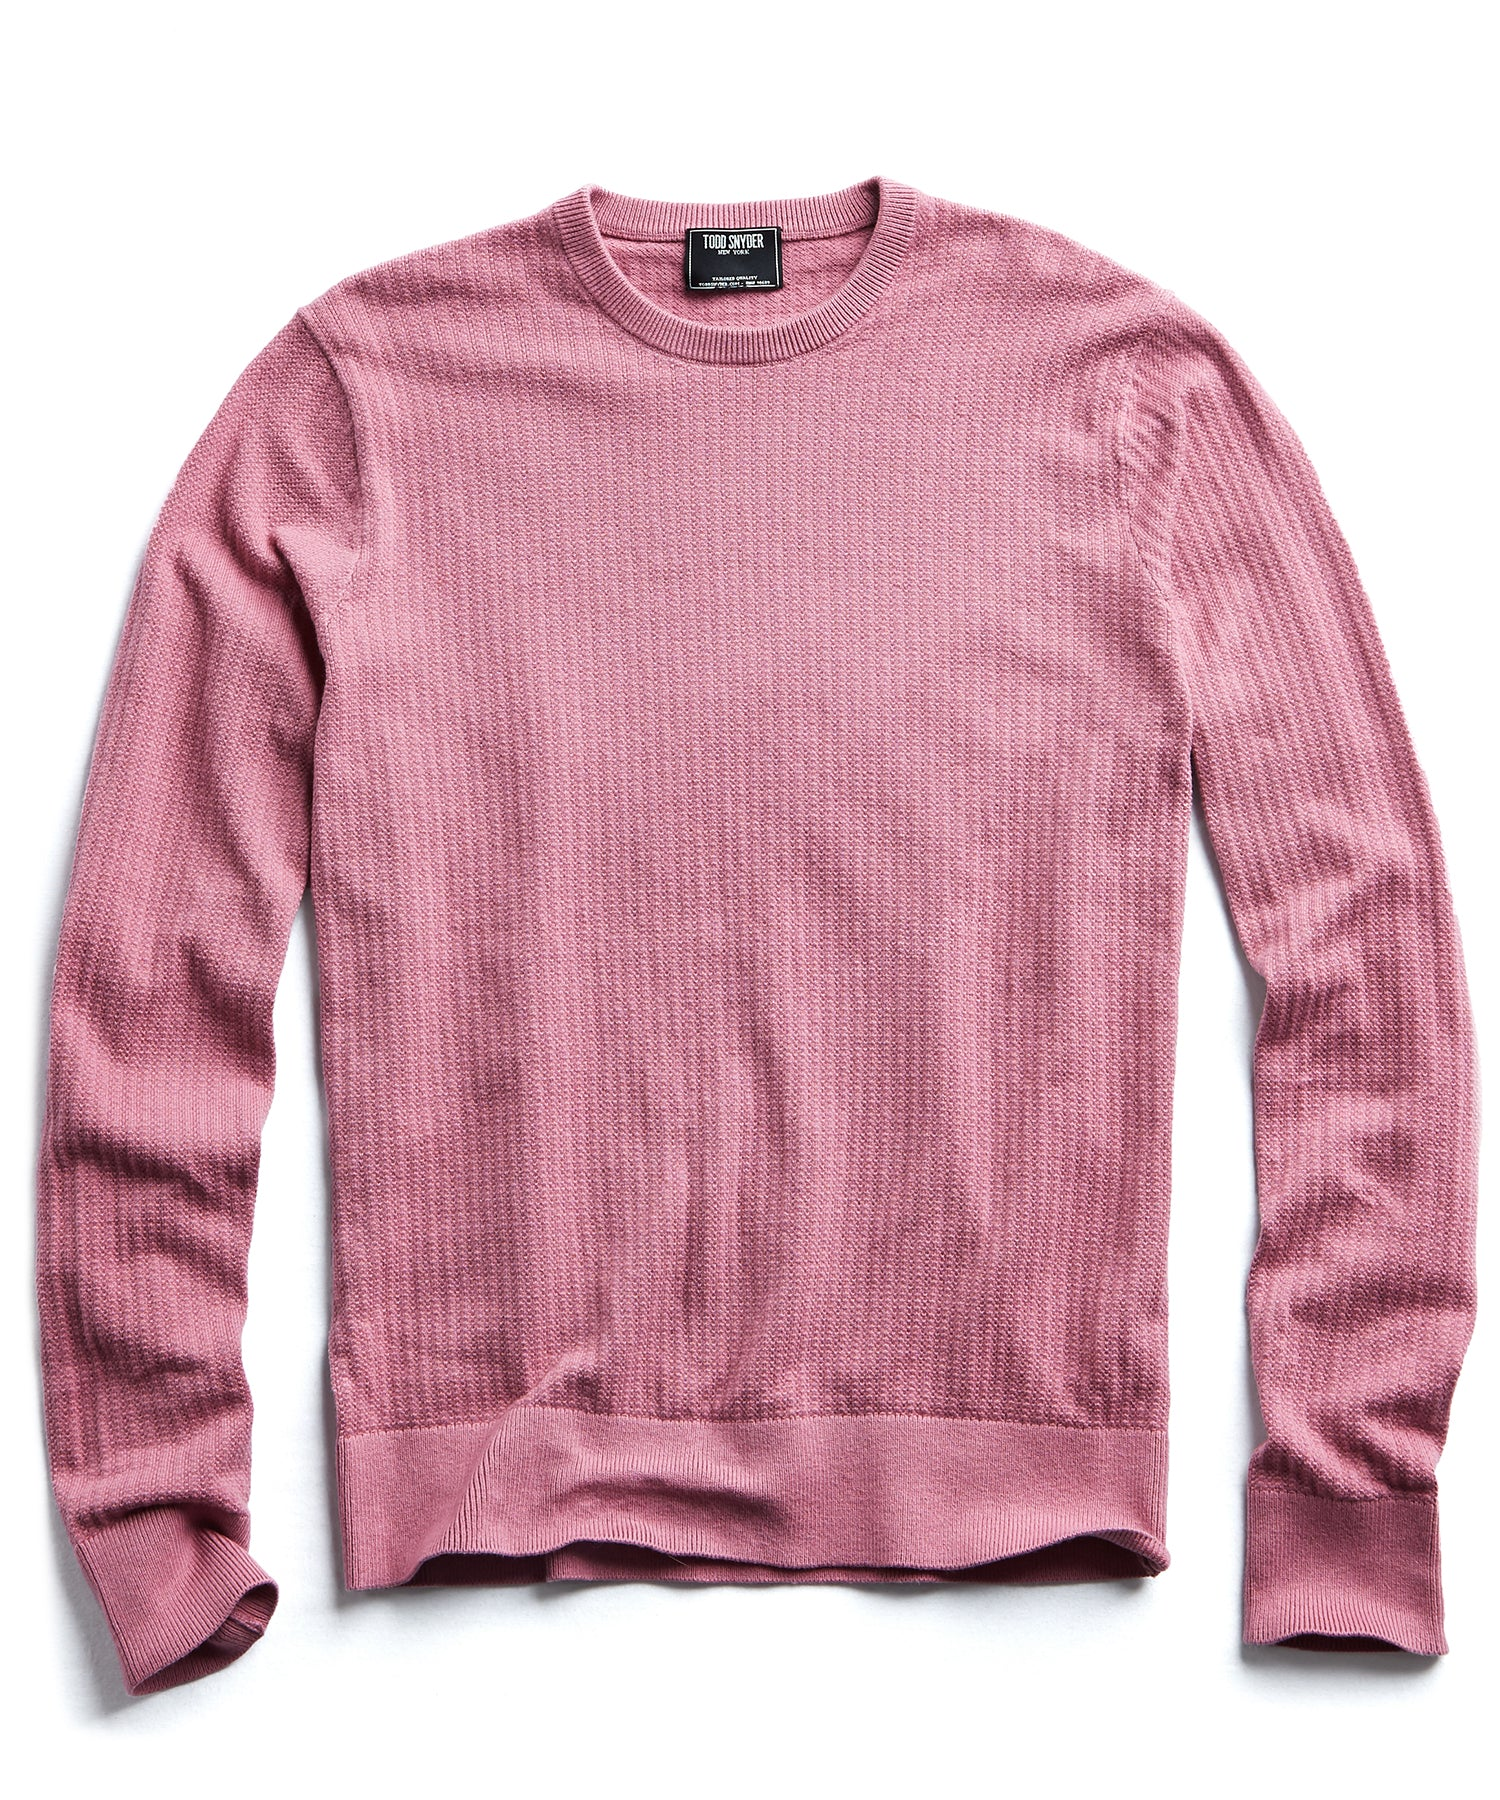 Cotton Crew Neck in Mauve